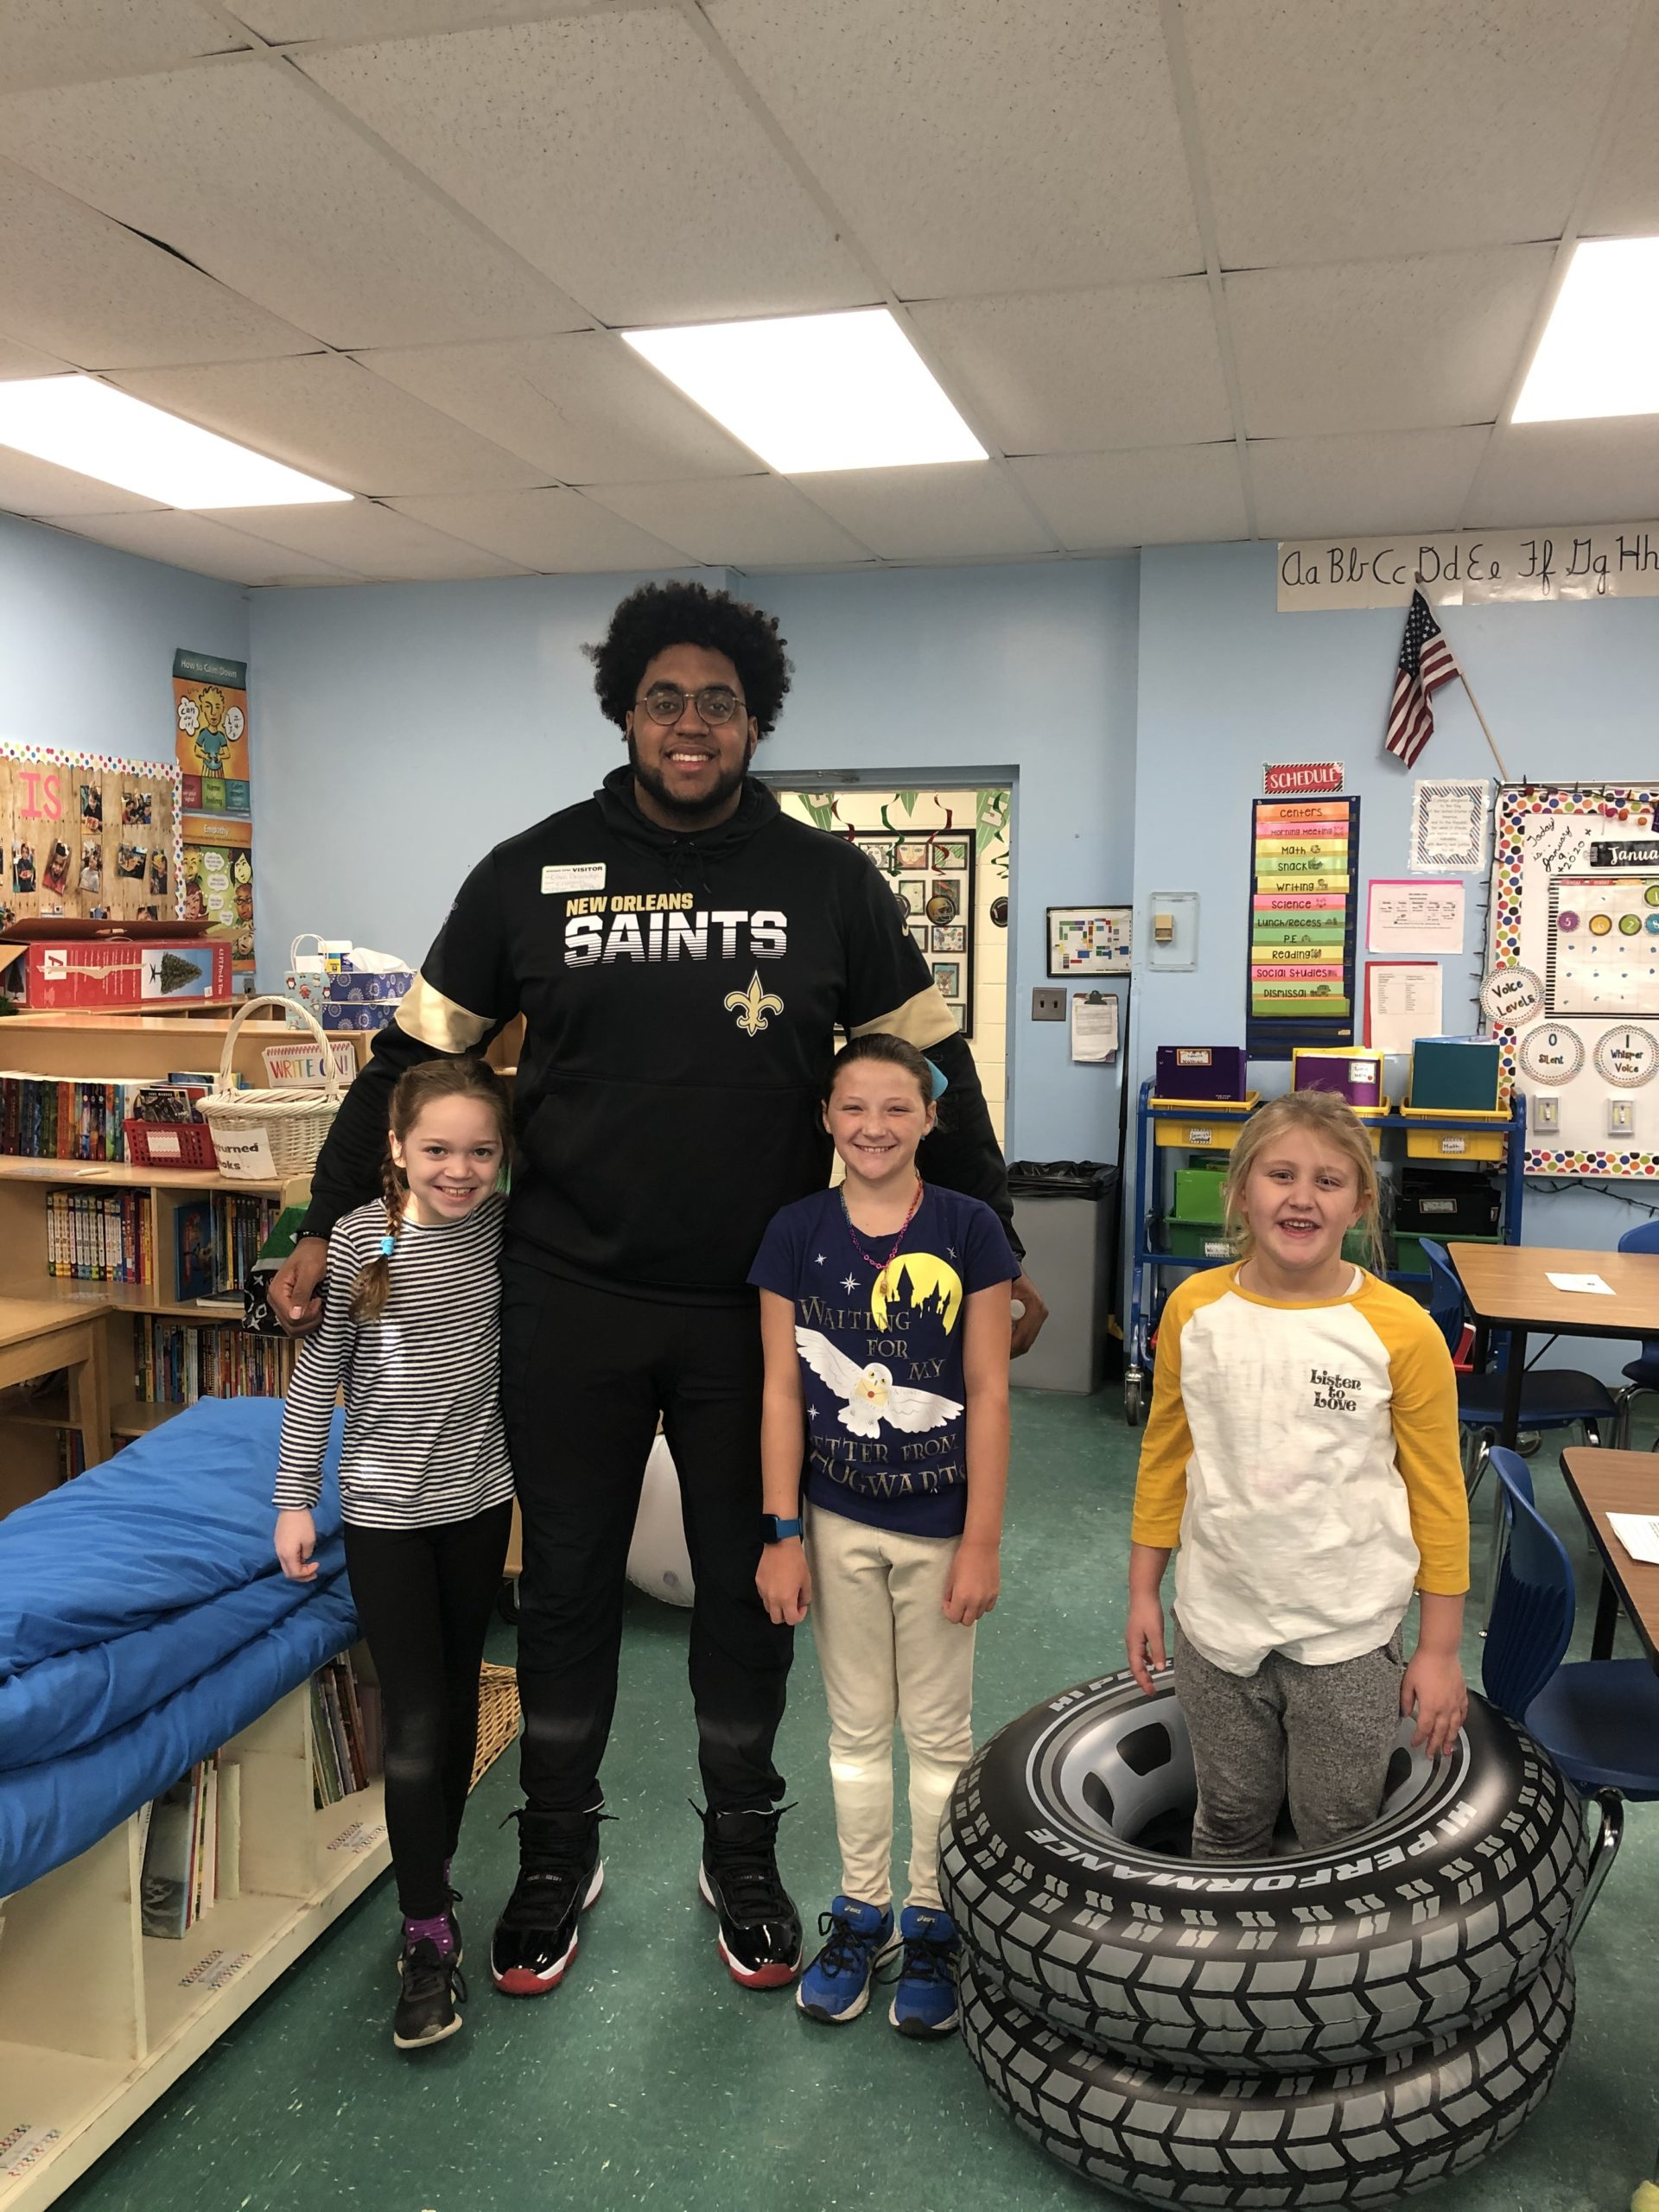 New Orleans Saints offensive lineman Ethan Greenidge visited fourth-graders at Springs School recently. During his visit, he talked about the importance of teamwork and dedication. Students also got to practice their interviewing skills. He is the brother of a teaching assistant.